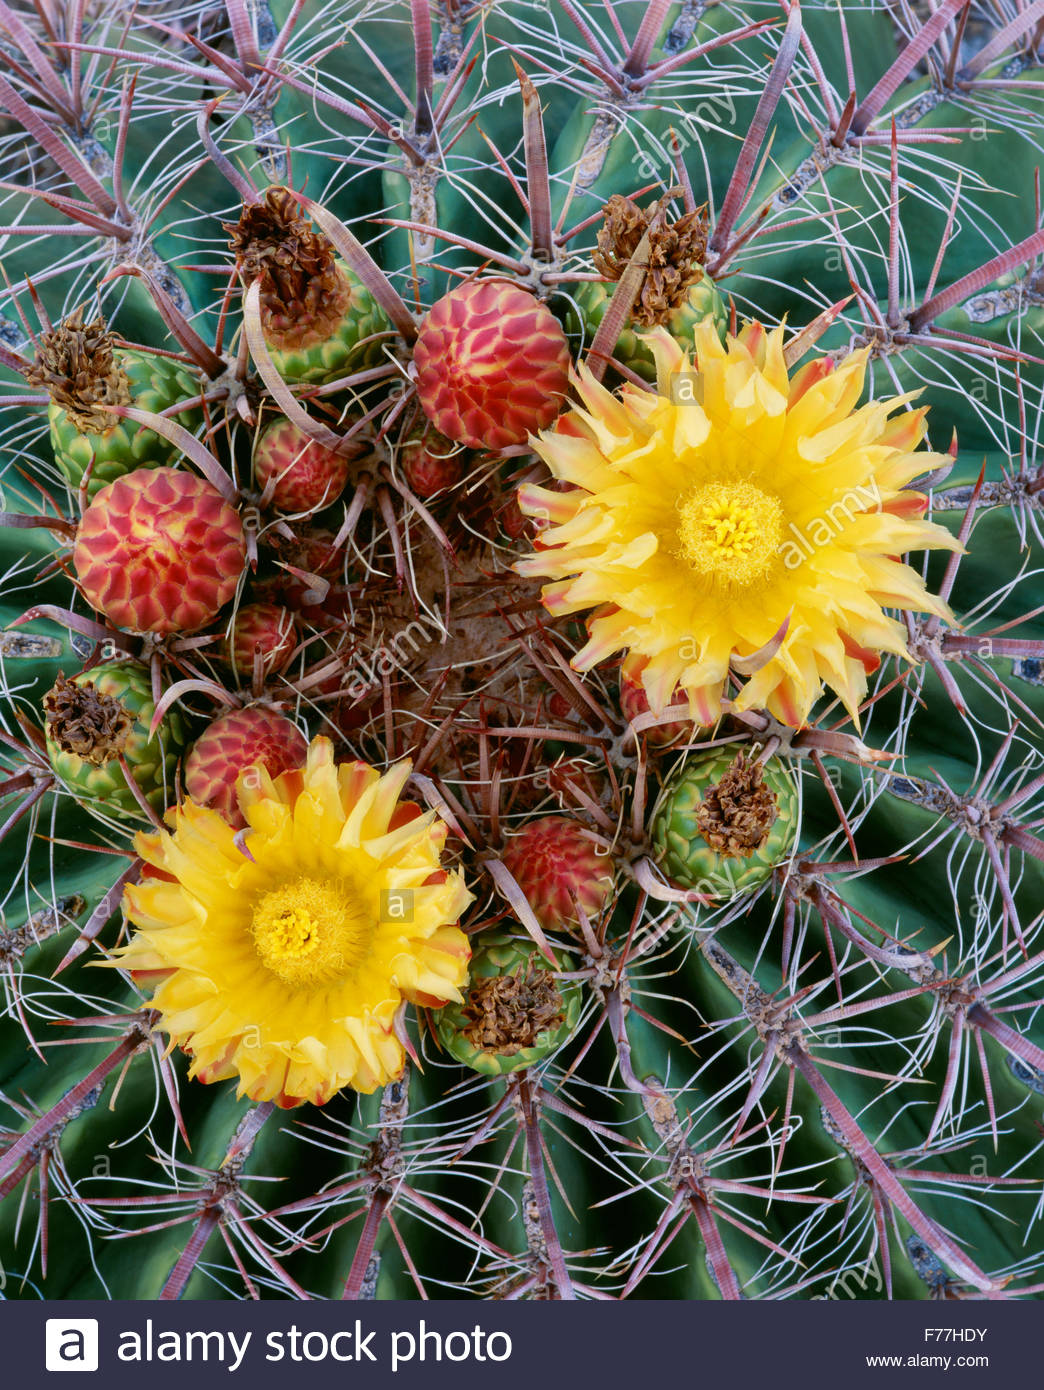 Angelhaken Barrel Cactus [Ferocactus Wislizenii] Saguaro-Nationalpark. Arizona. Stockbild